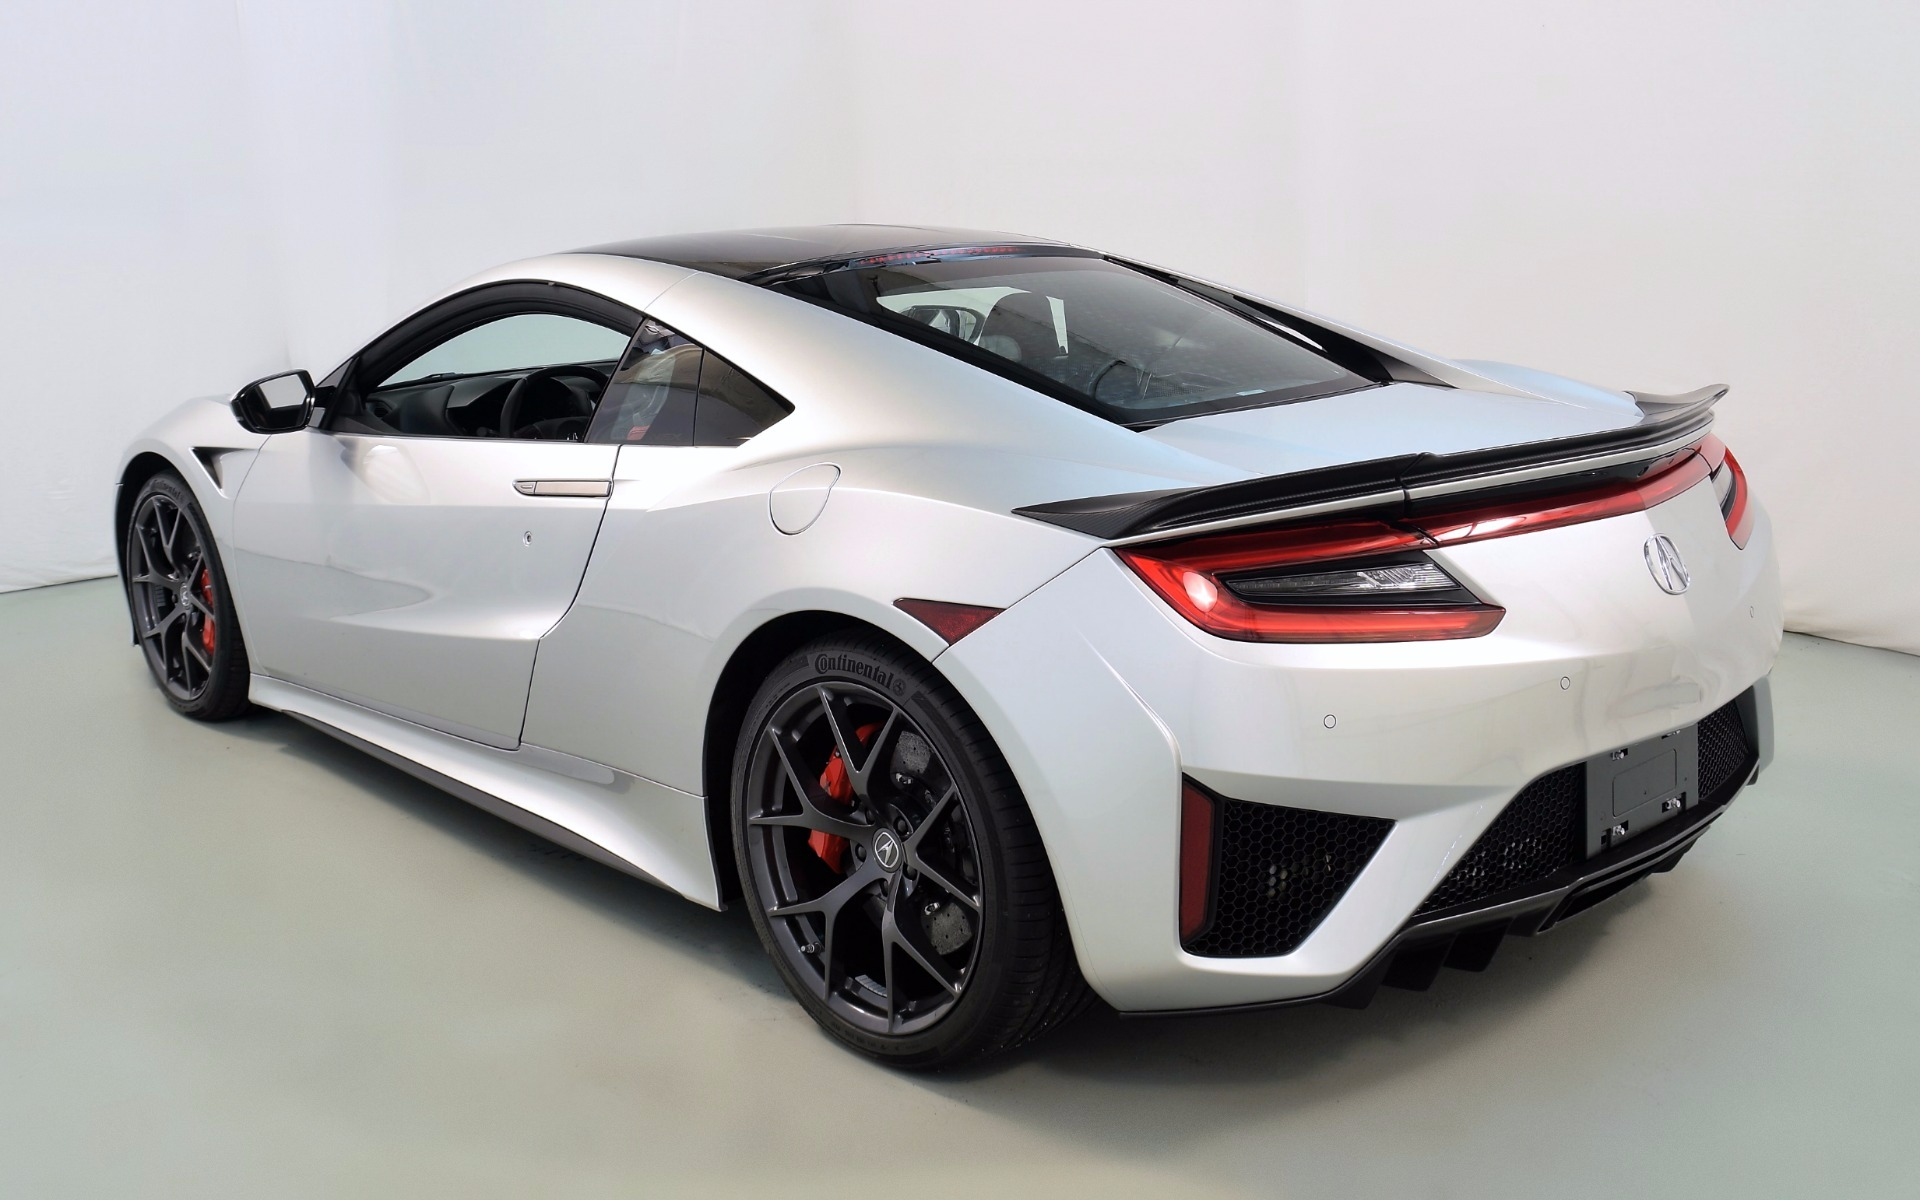 2017 acura nsx sh awd sport hybrid for sale in norwell ma 000229 mclaren boston. Black Bedroom Furniture Sets. Home Design Ideas